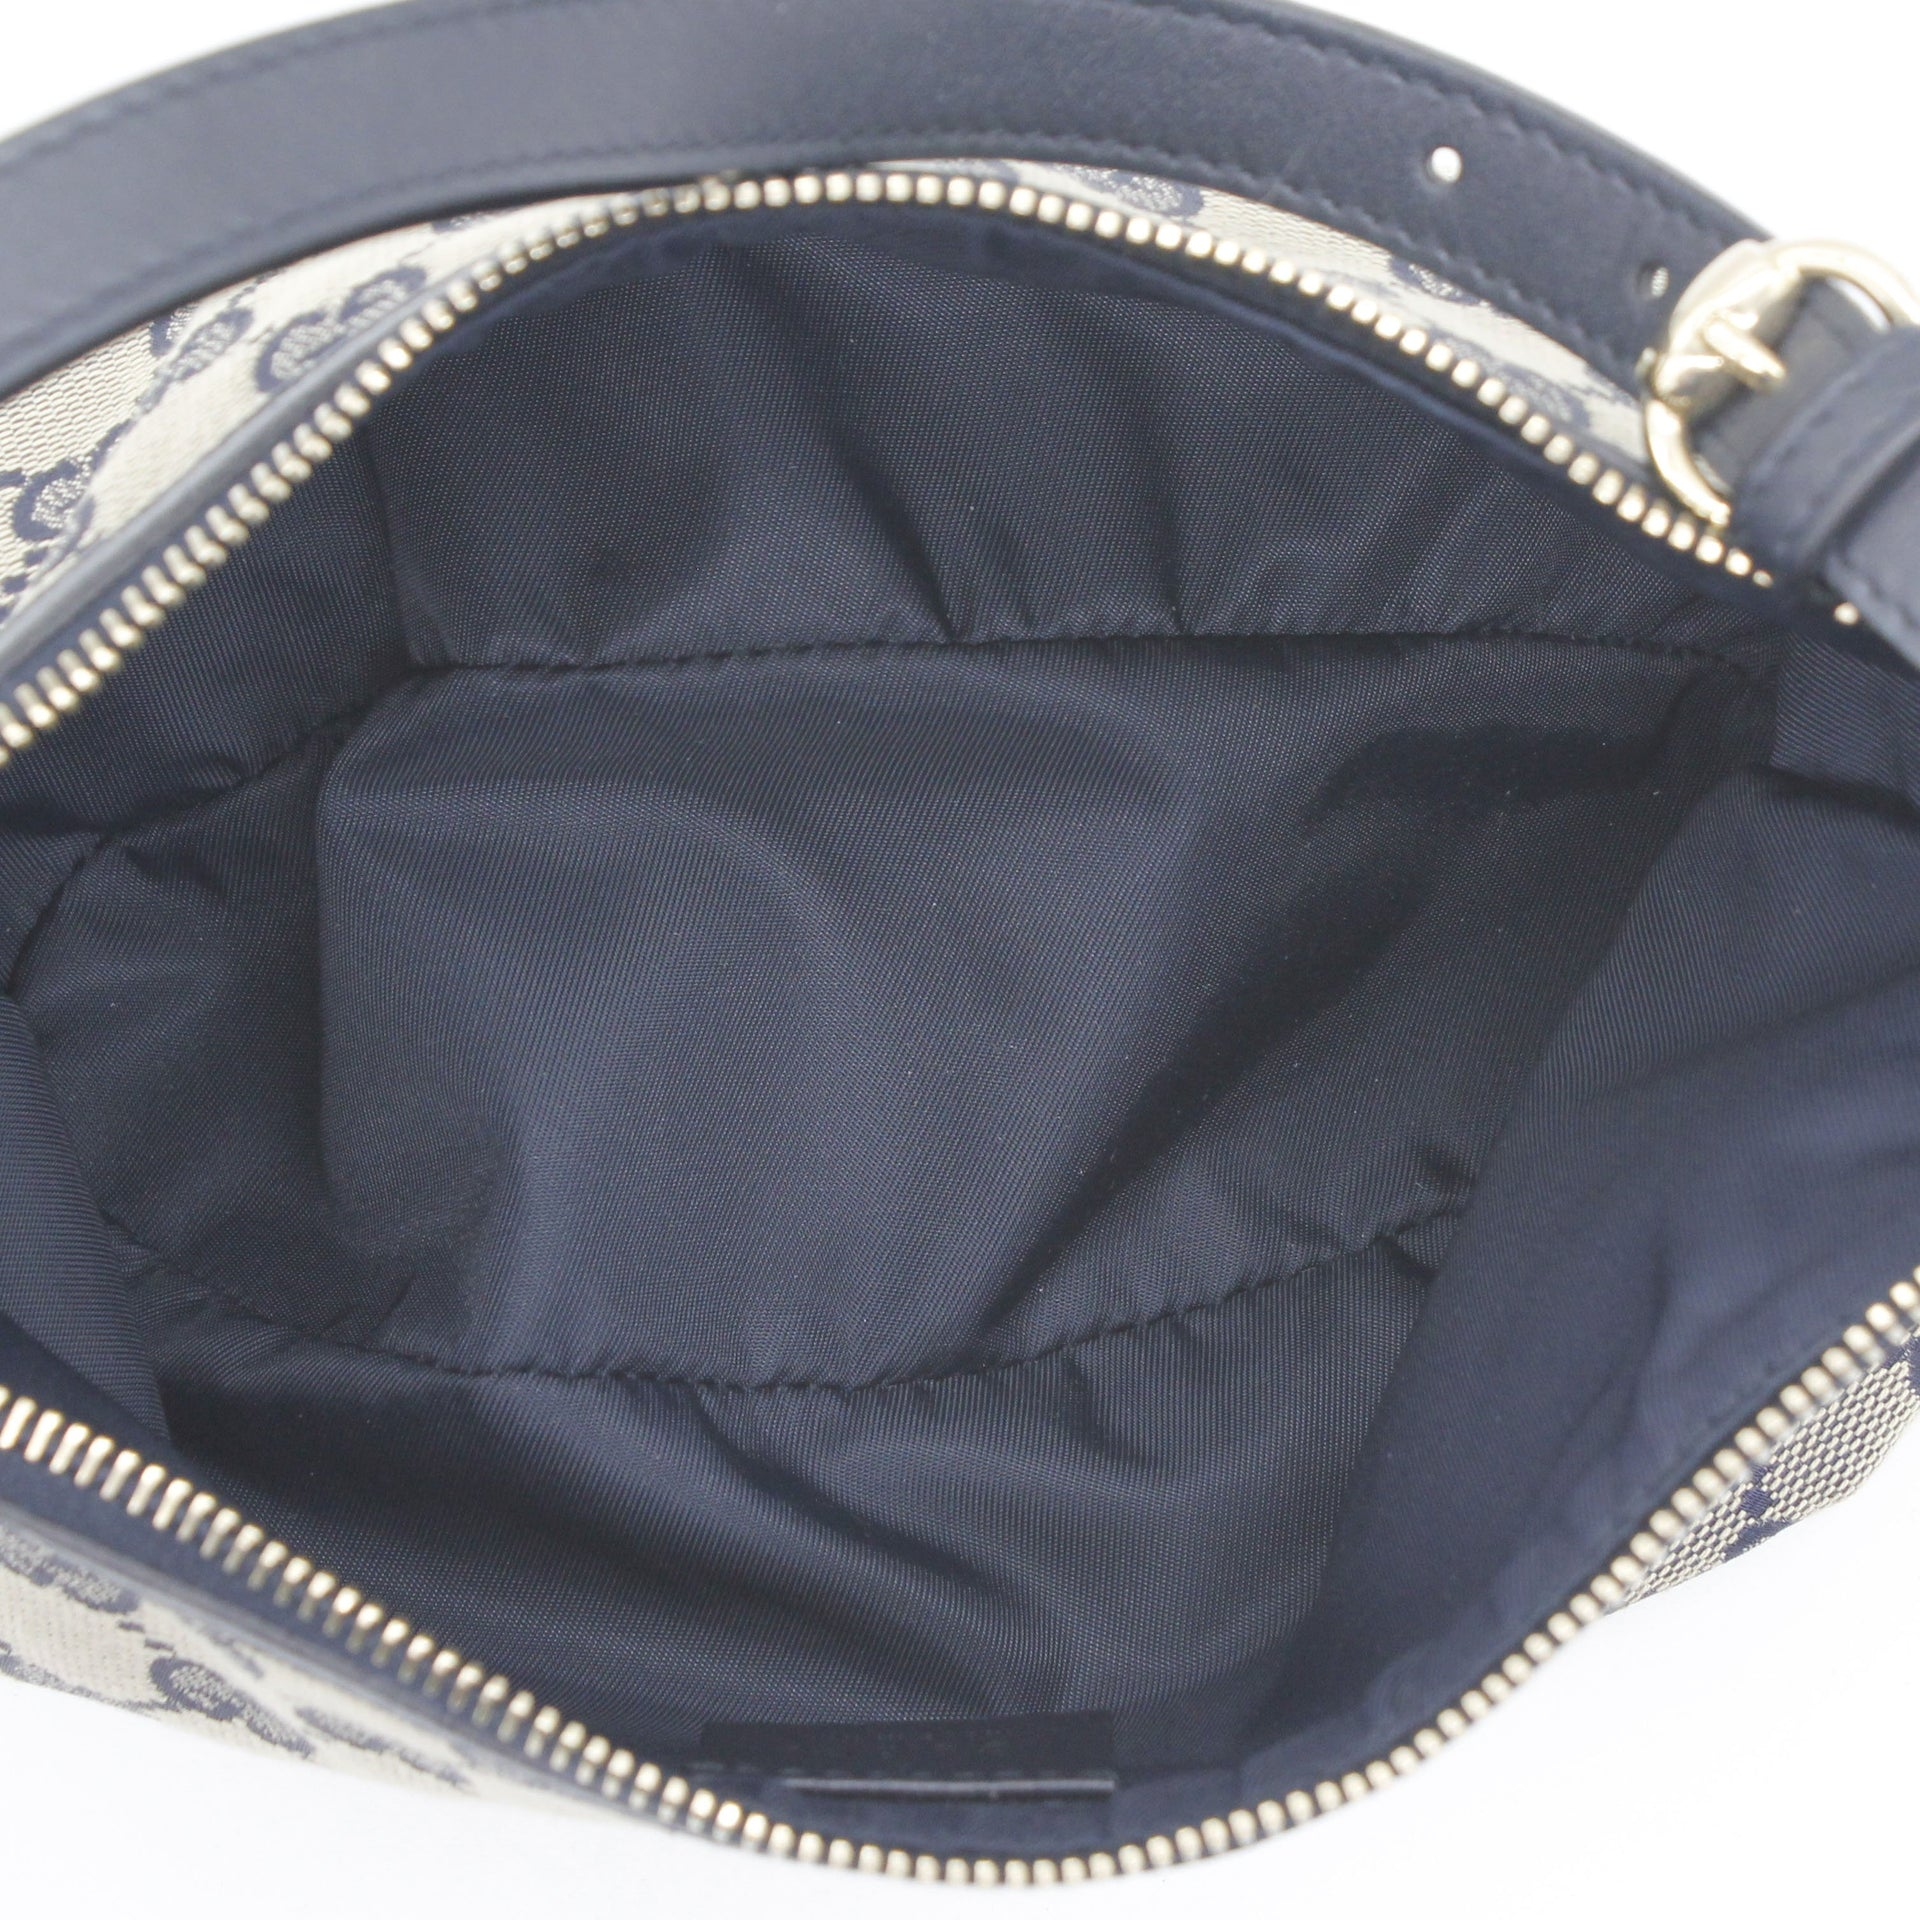 Monogram Strap Cosmetic Case Navy